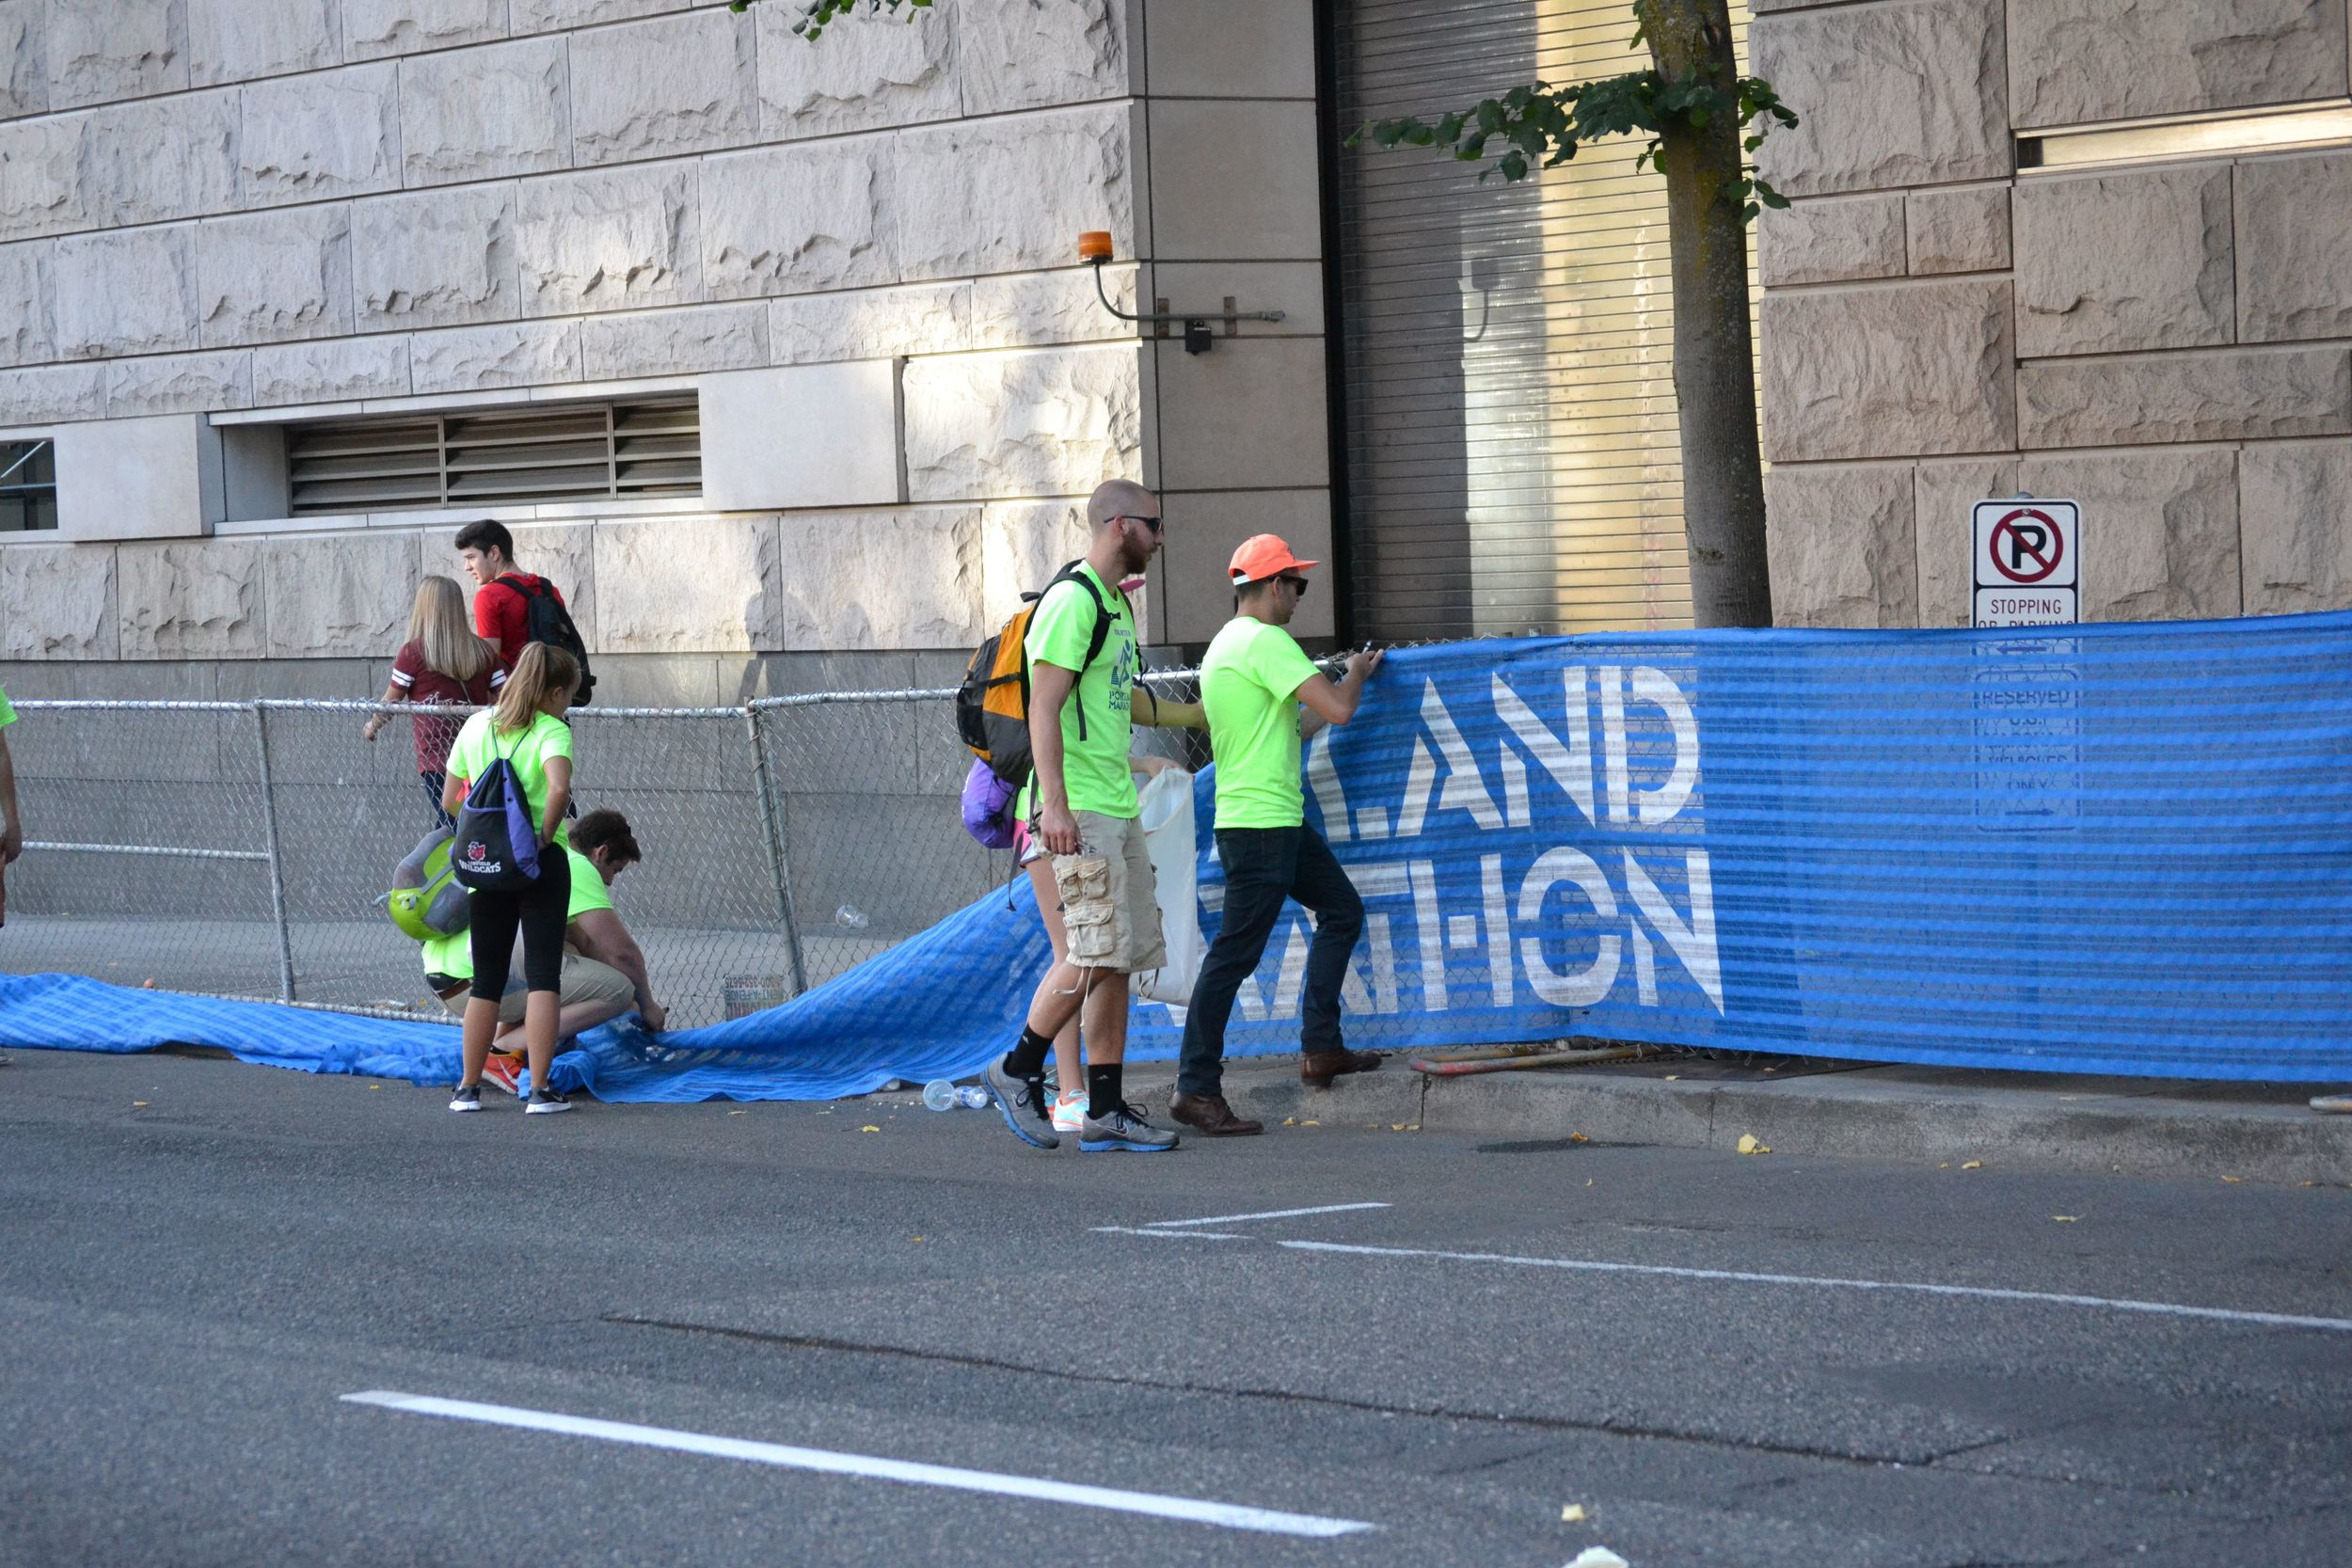 portlandmarathon.teardown